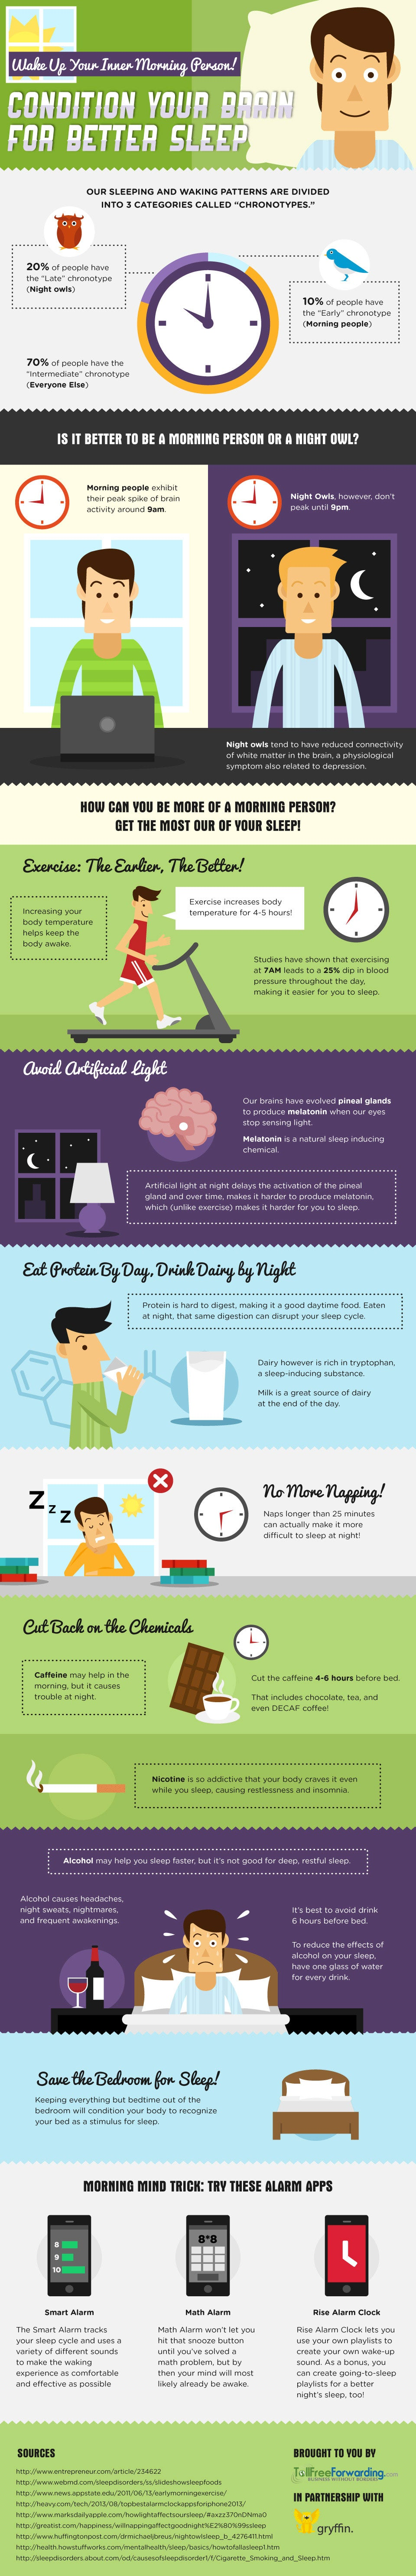 How to Become More of a Morning Person (Infographic)